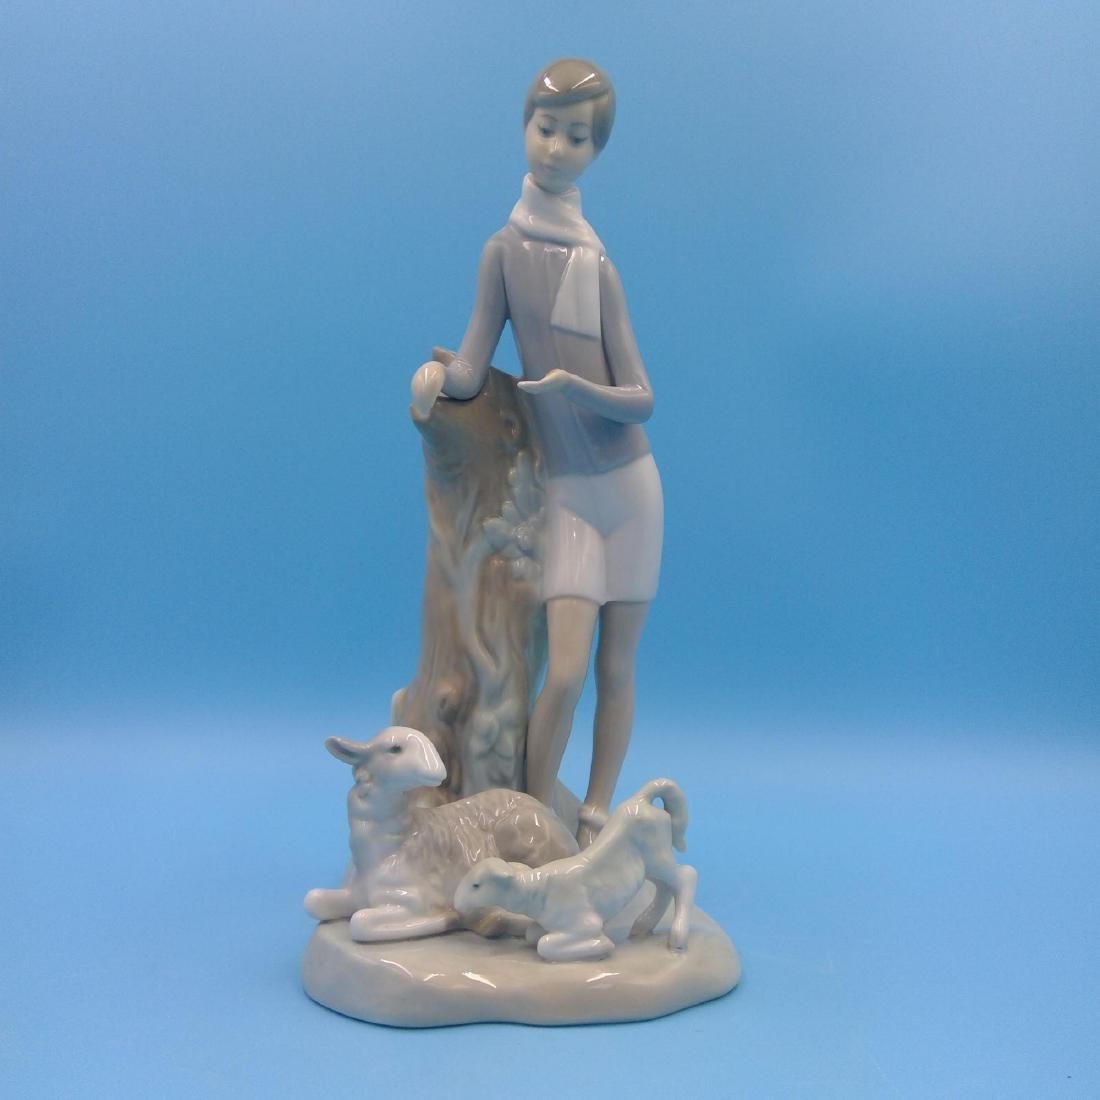 LLADRO PORCELAIN FIGURINE BOY WITH LAMBS